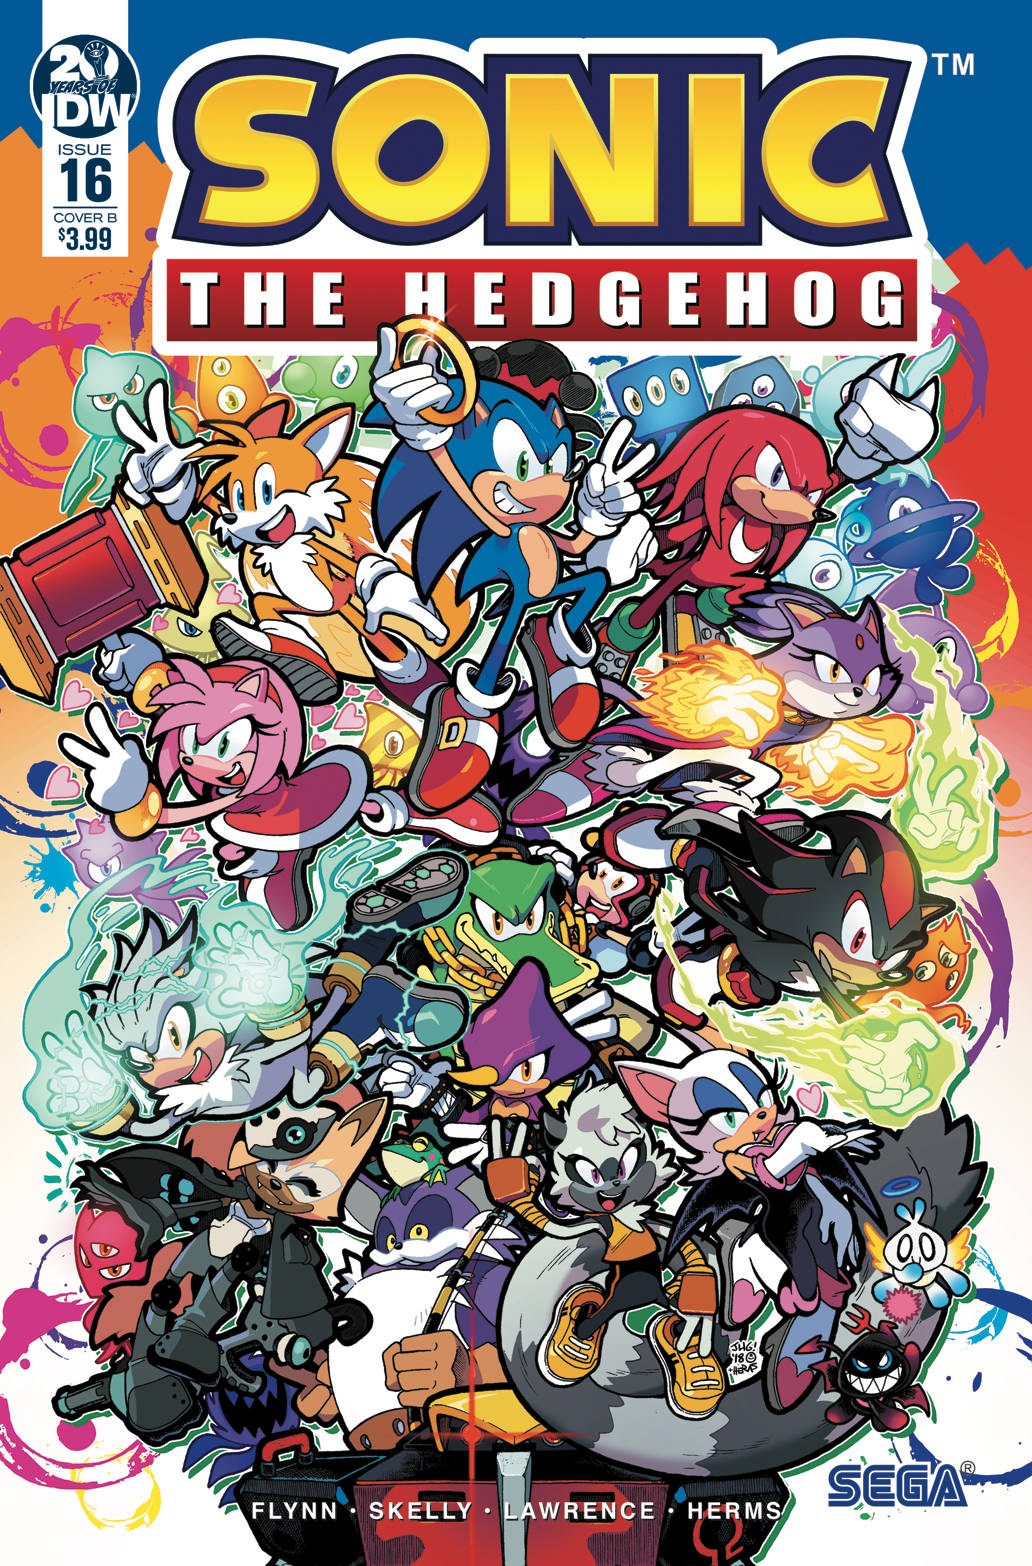 SONIC THE HEDGEHOG 16 CVR B GRAY.jpg